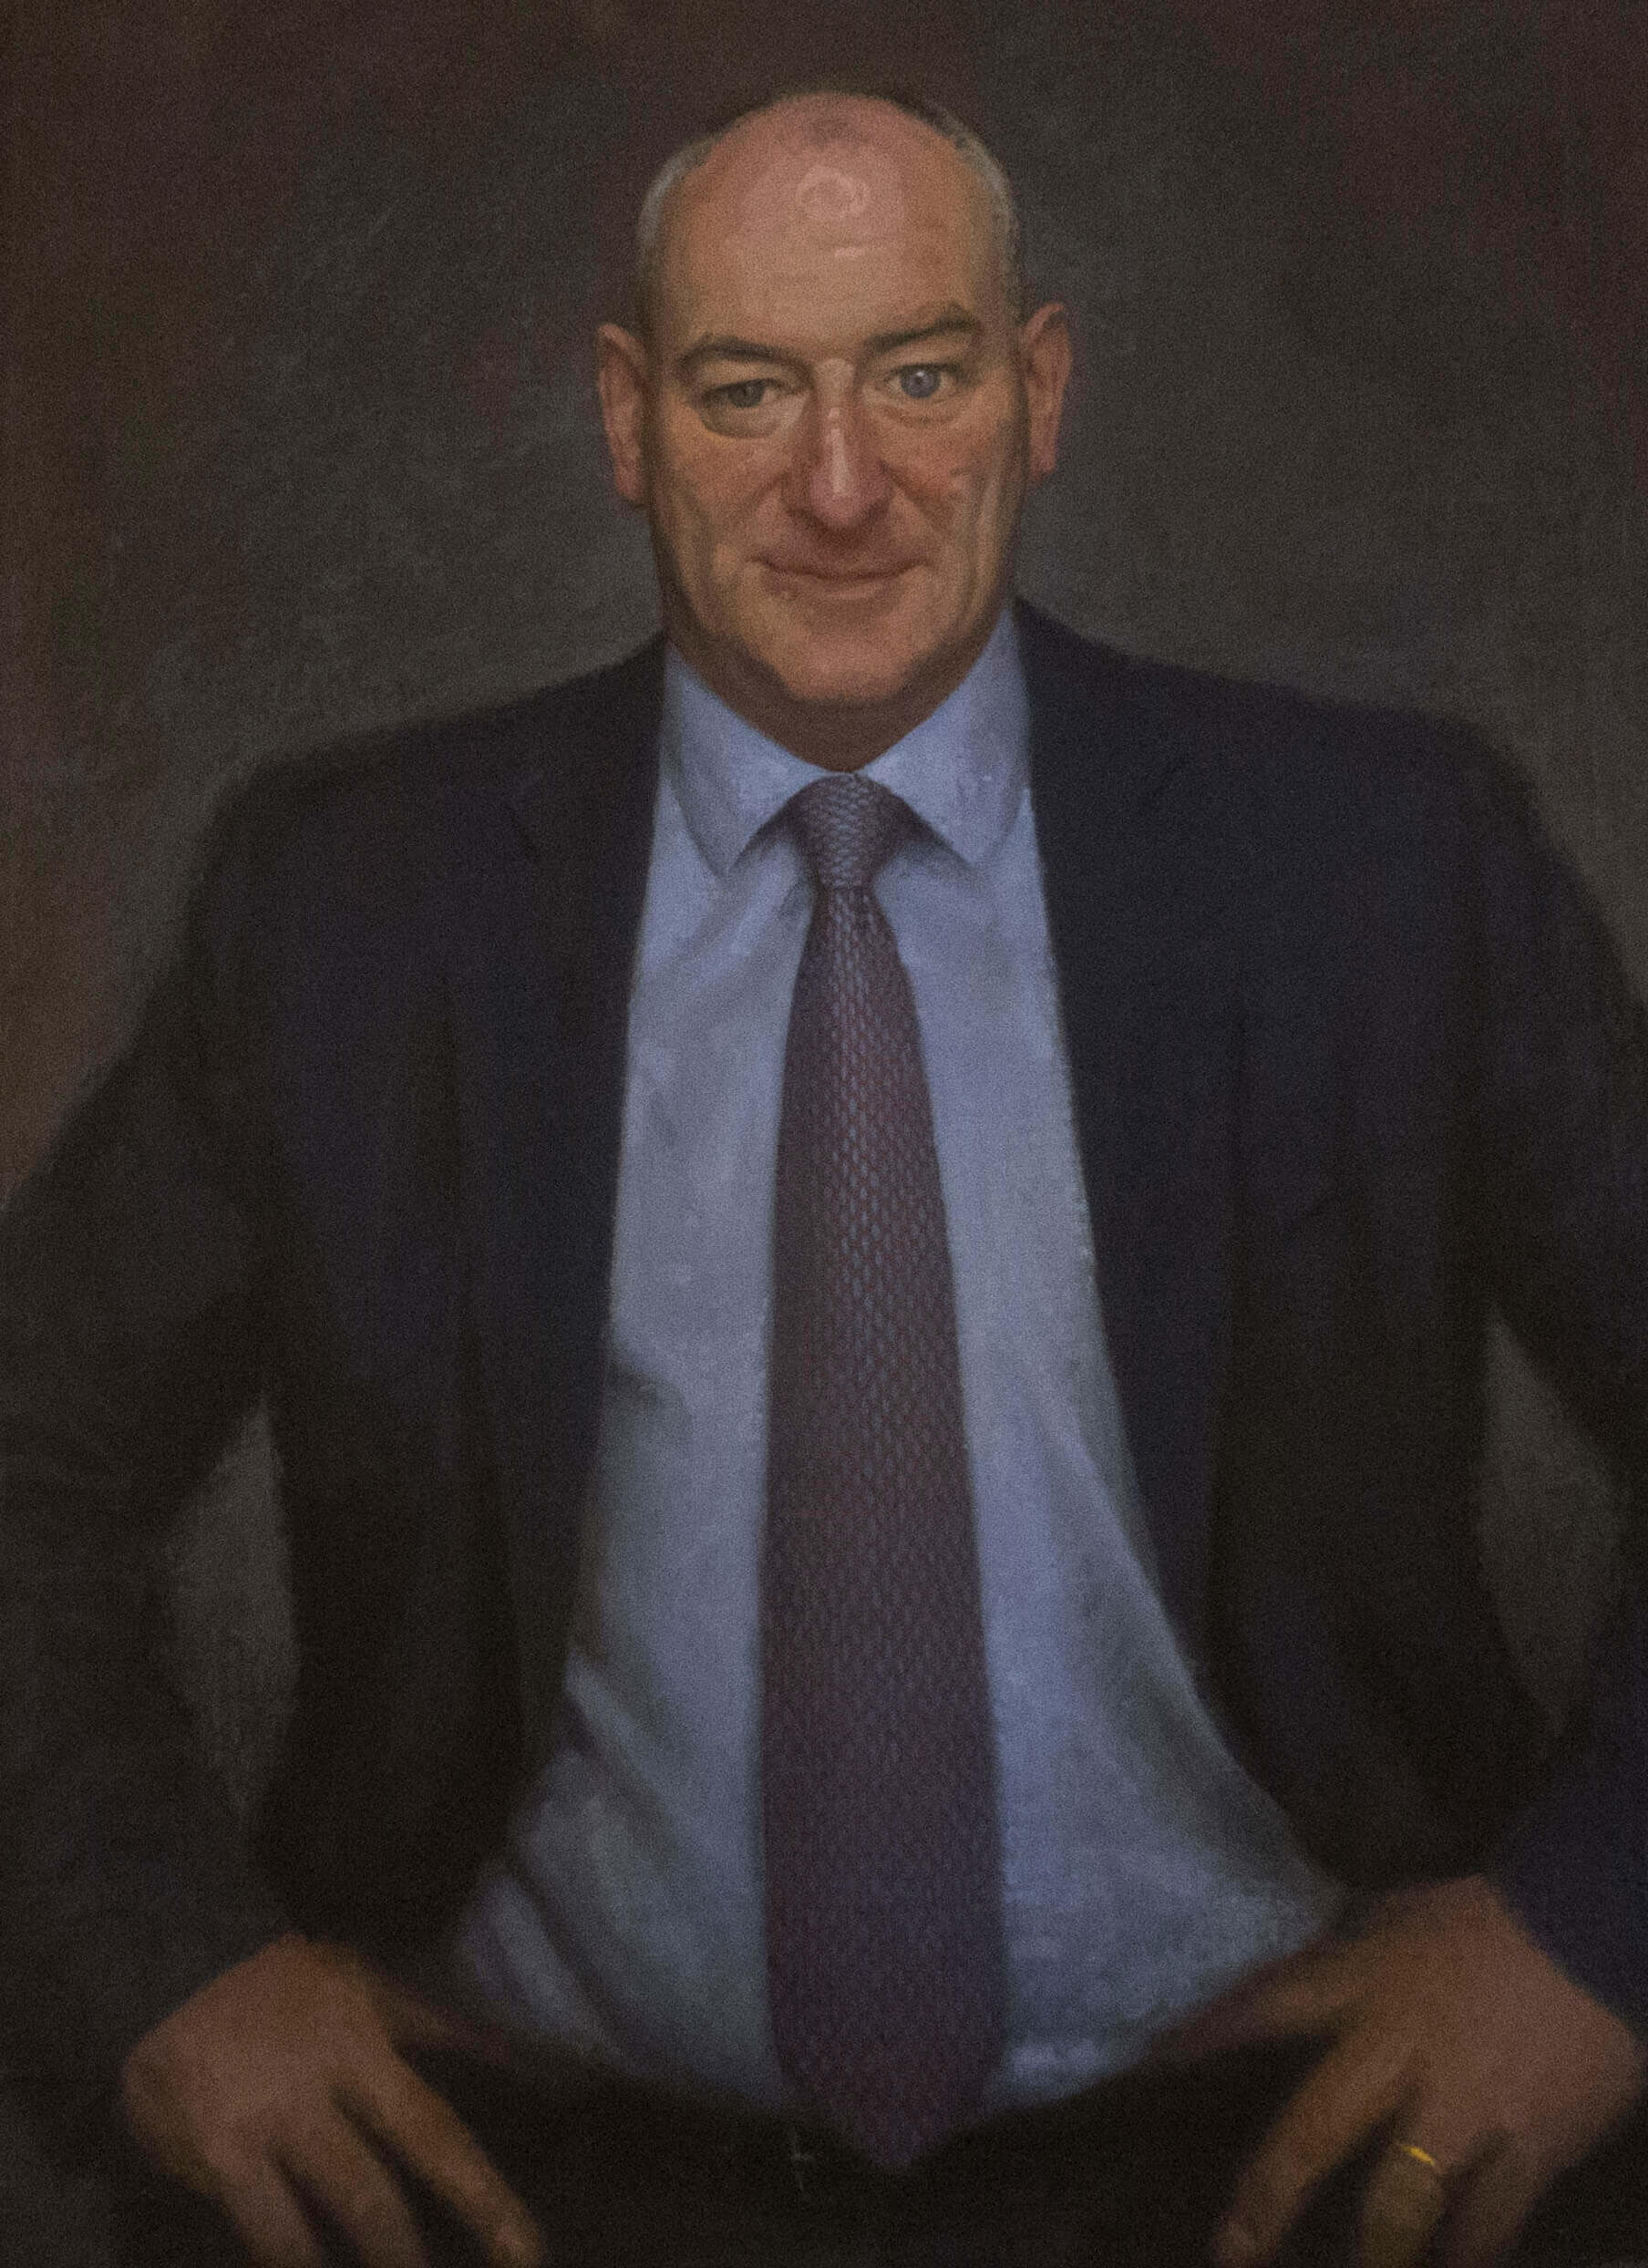 Portrait of Mark Durkan MP